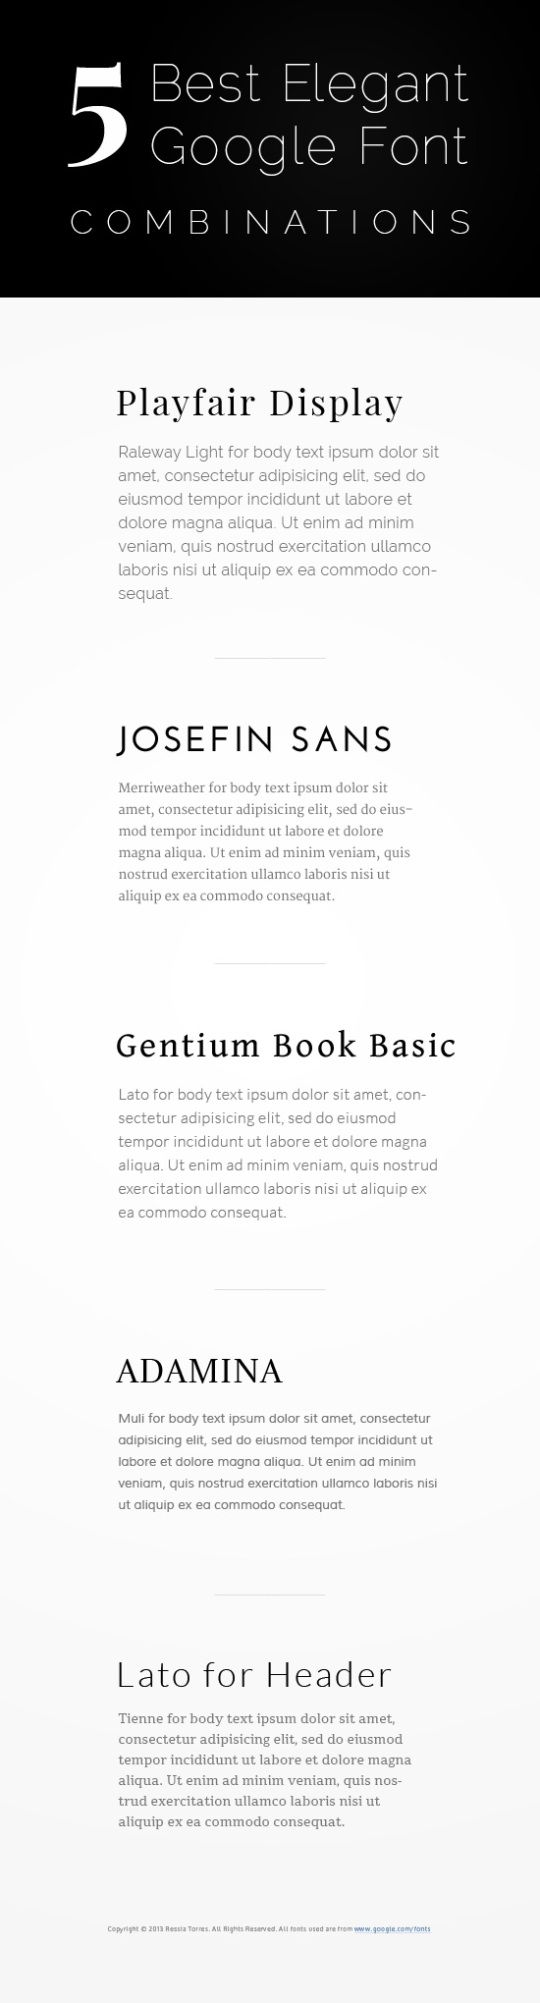 5 best google font combinations- I love Josefin Sans, use it all the time!